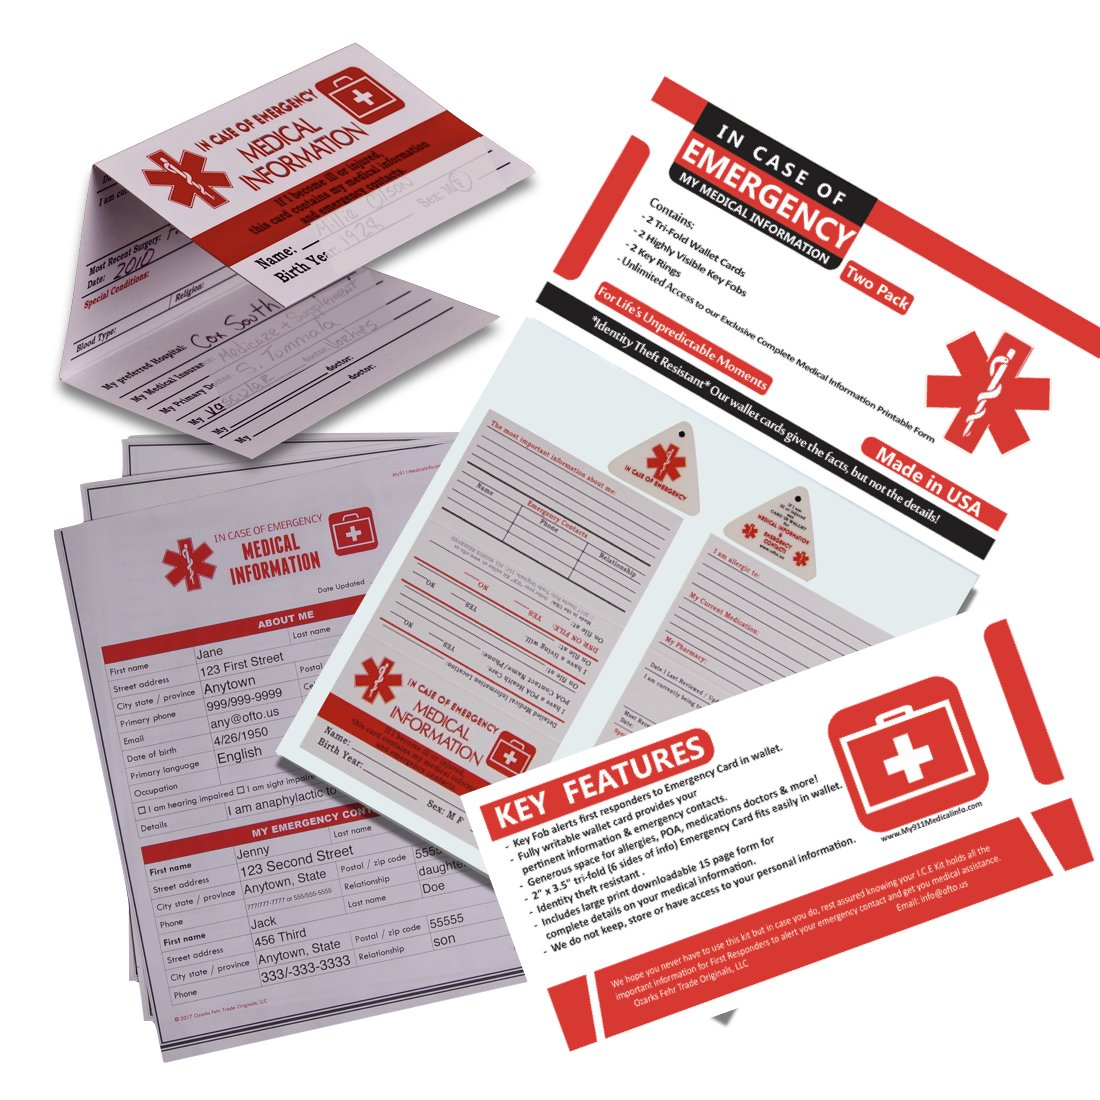 In Case of Emergency My Medical Information Kit (for people ... Safety Medical Information on environmental health and safety, emergency safety, fitness safety, retail safety, sanitation safety, daycare safety, social safety, think safety, surgical safety,